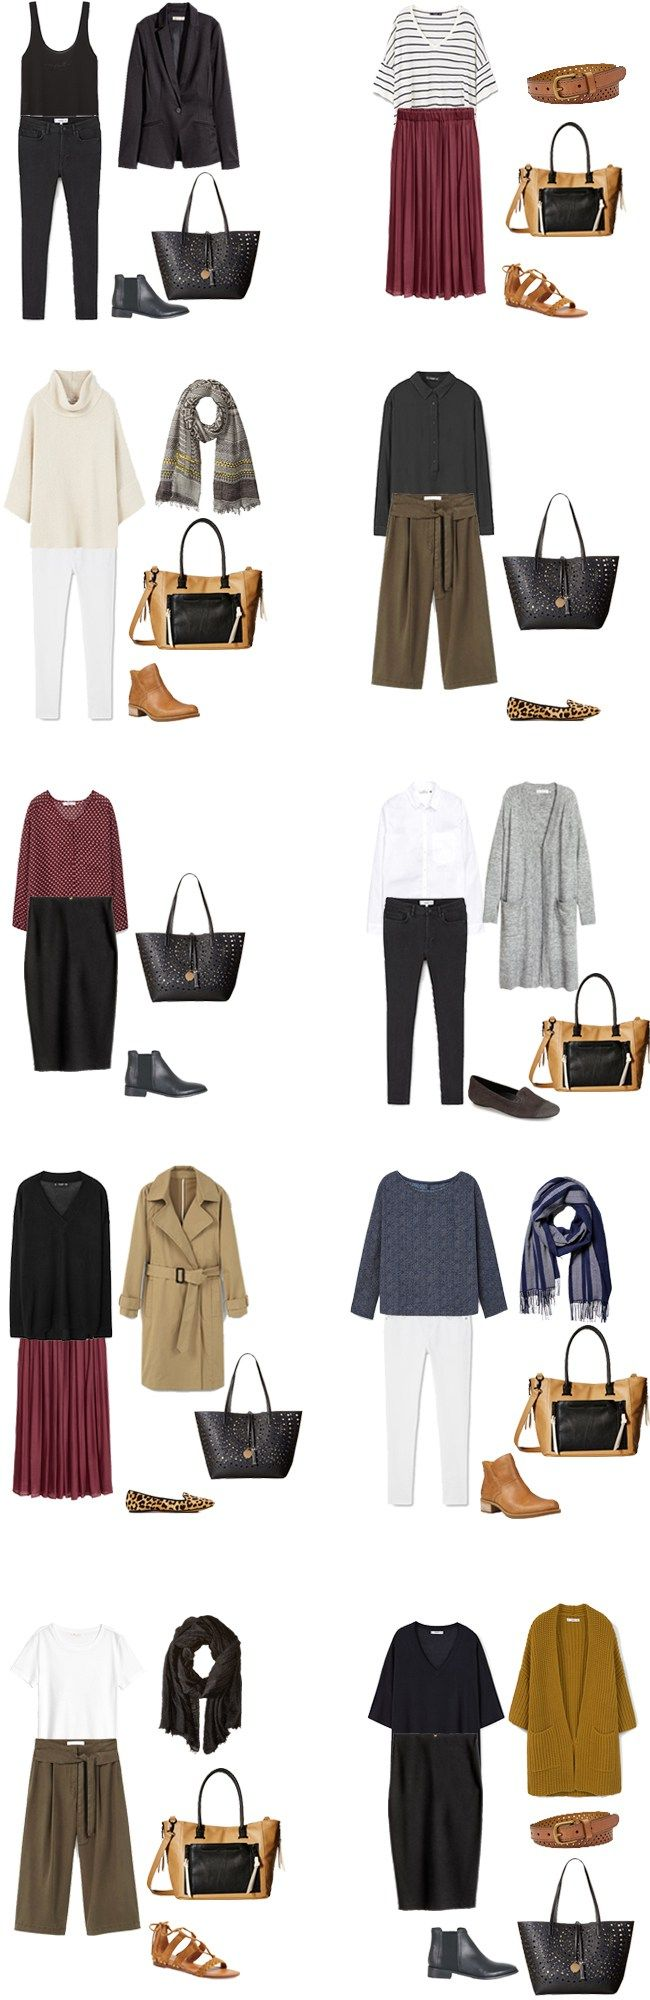 Teacher Capsule What to Wear Outfits Options 1-10 #capsule #capsulewardrobe…